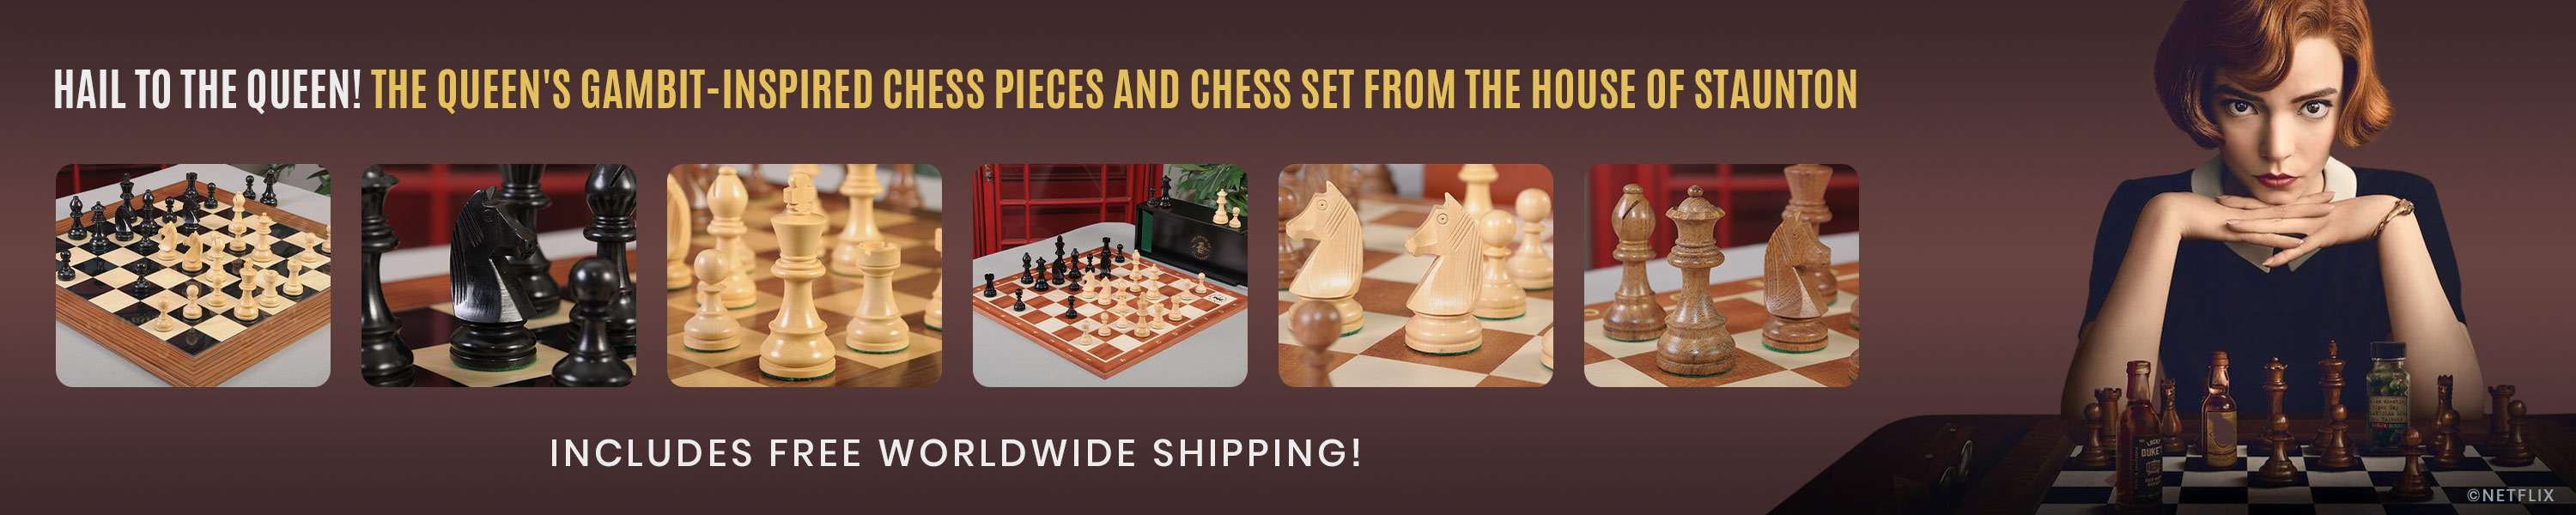 The Queen's Gambit-Inspired Chess Pieces and Chess Set from The House of Staunton